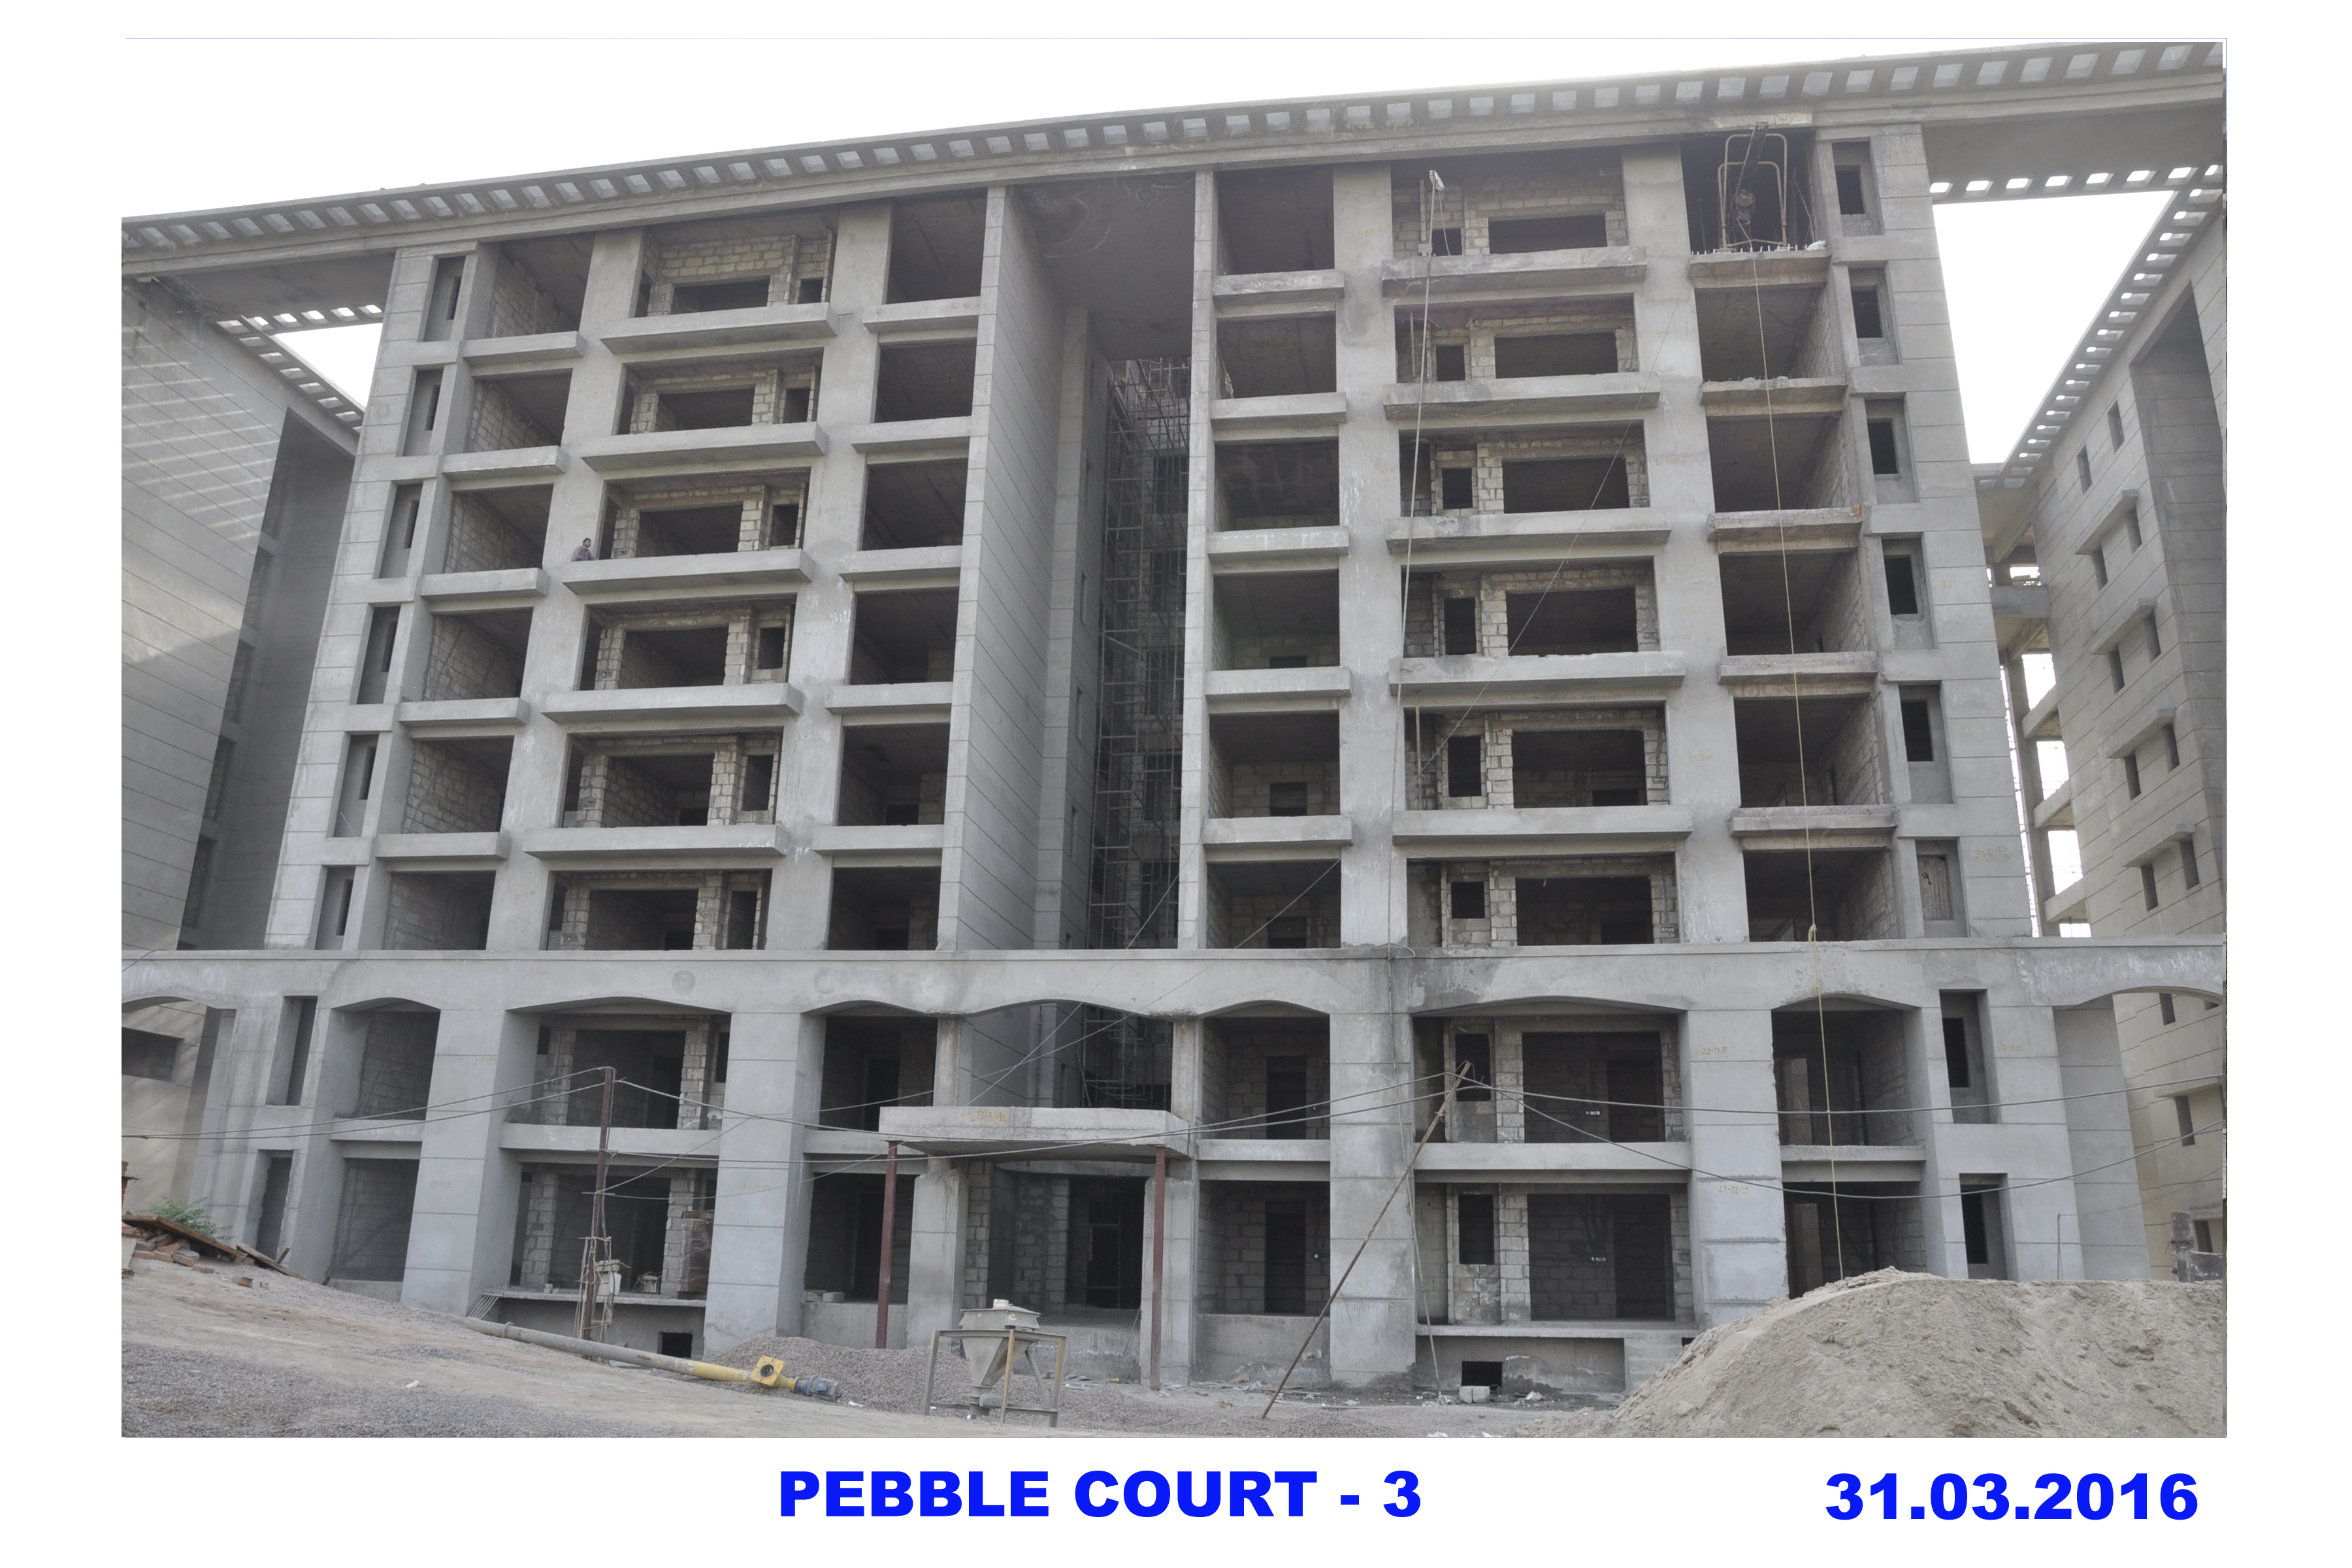 Pebble court Tower - 3